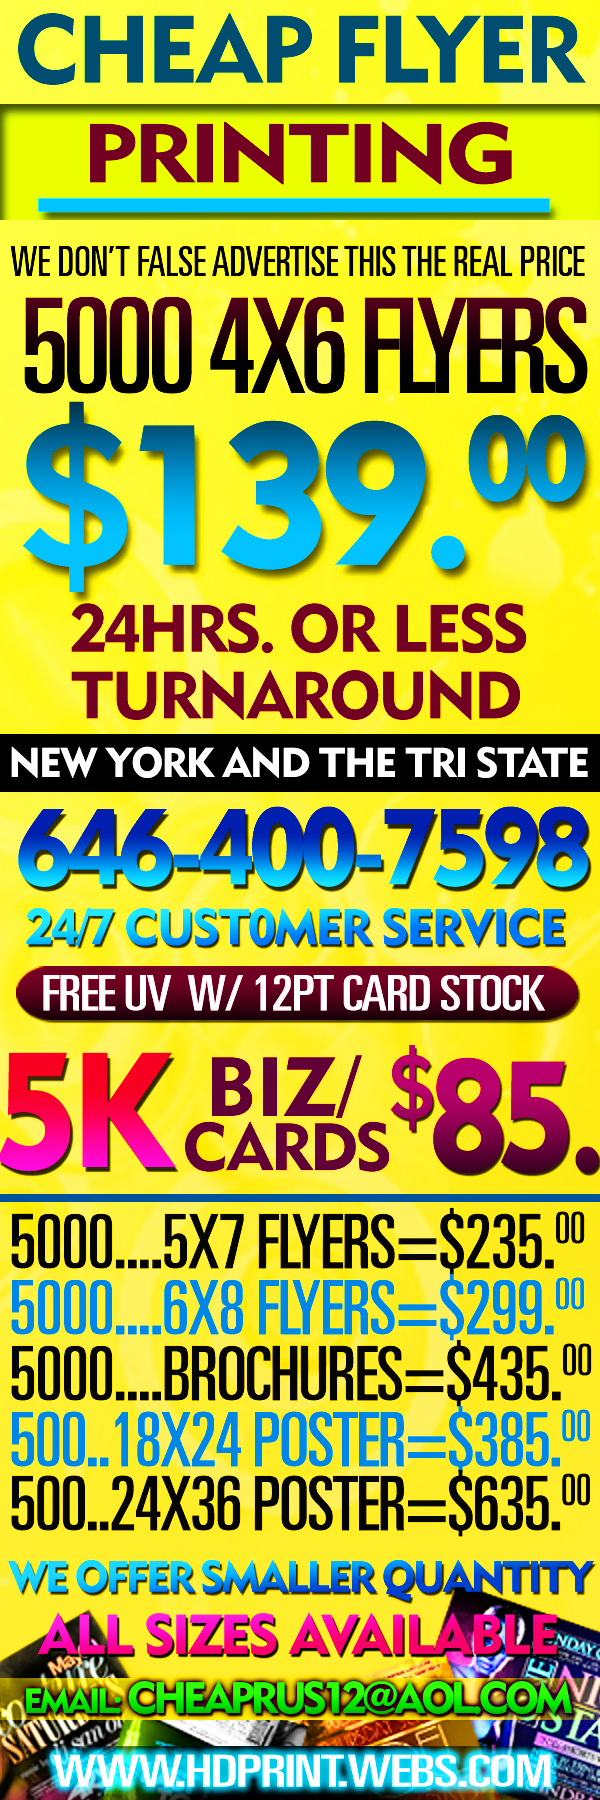 Home flyers biz cards posters brochures 24hrs t for Print posters online cheap